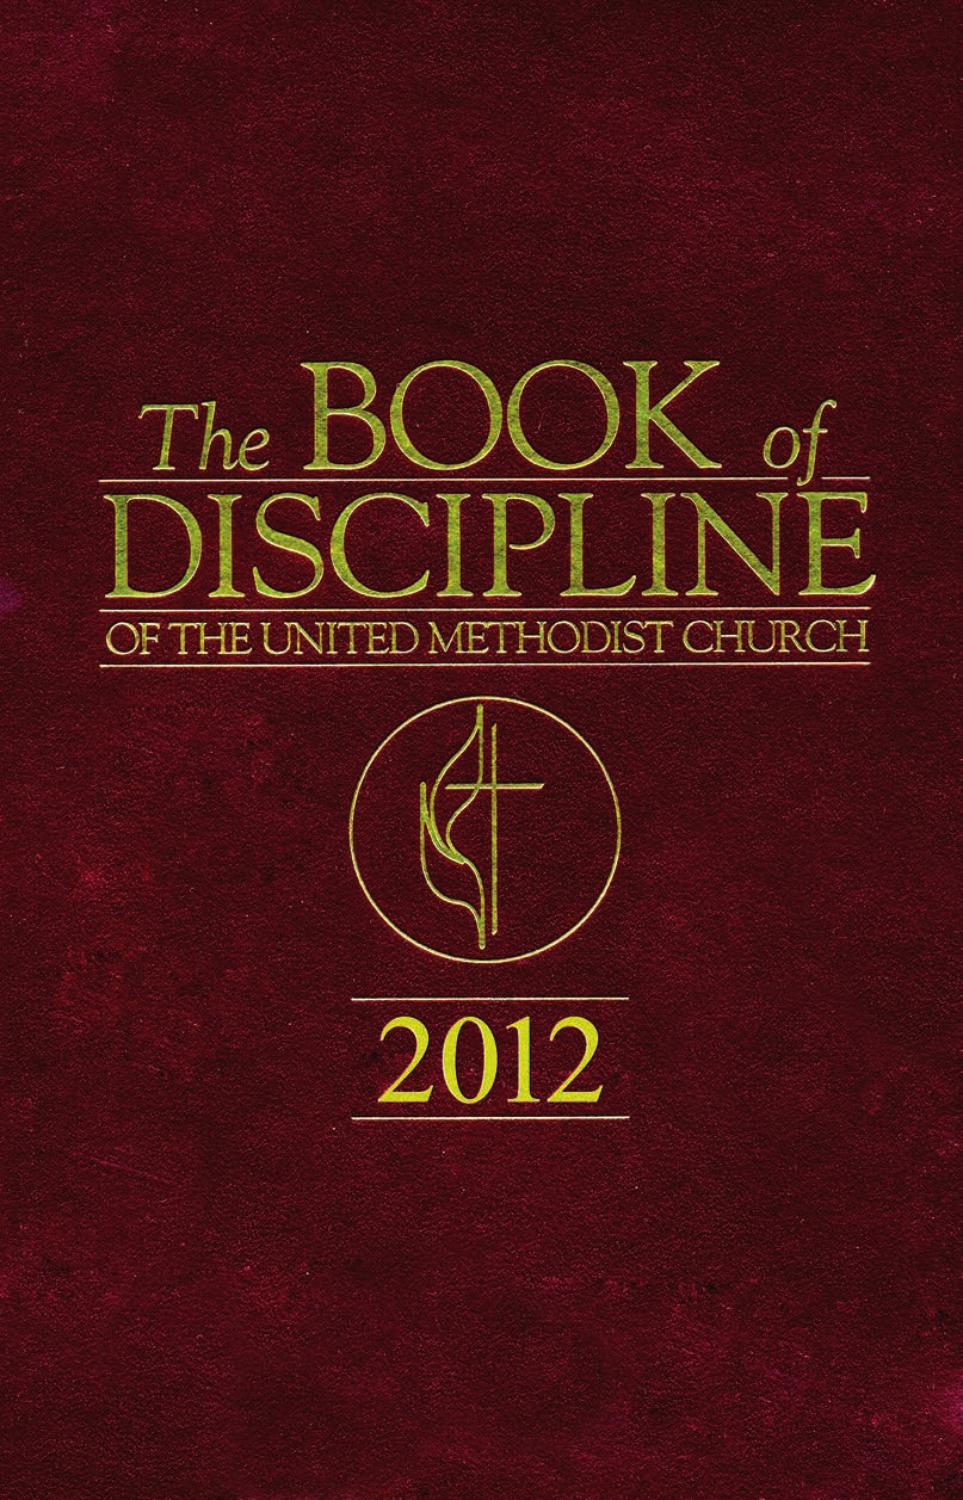 The book of discipline 2012 part ii by abingdon press issuu fandeluxe Gallery